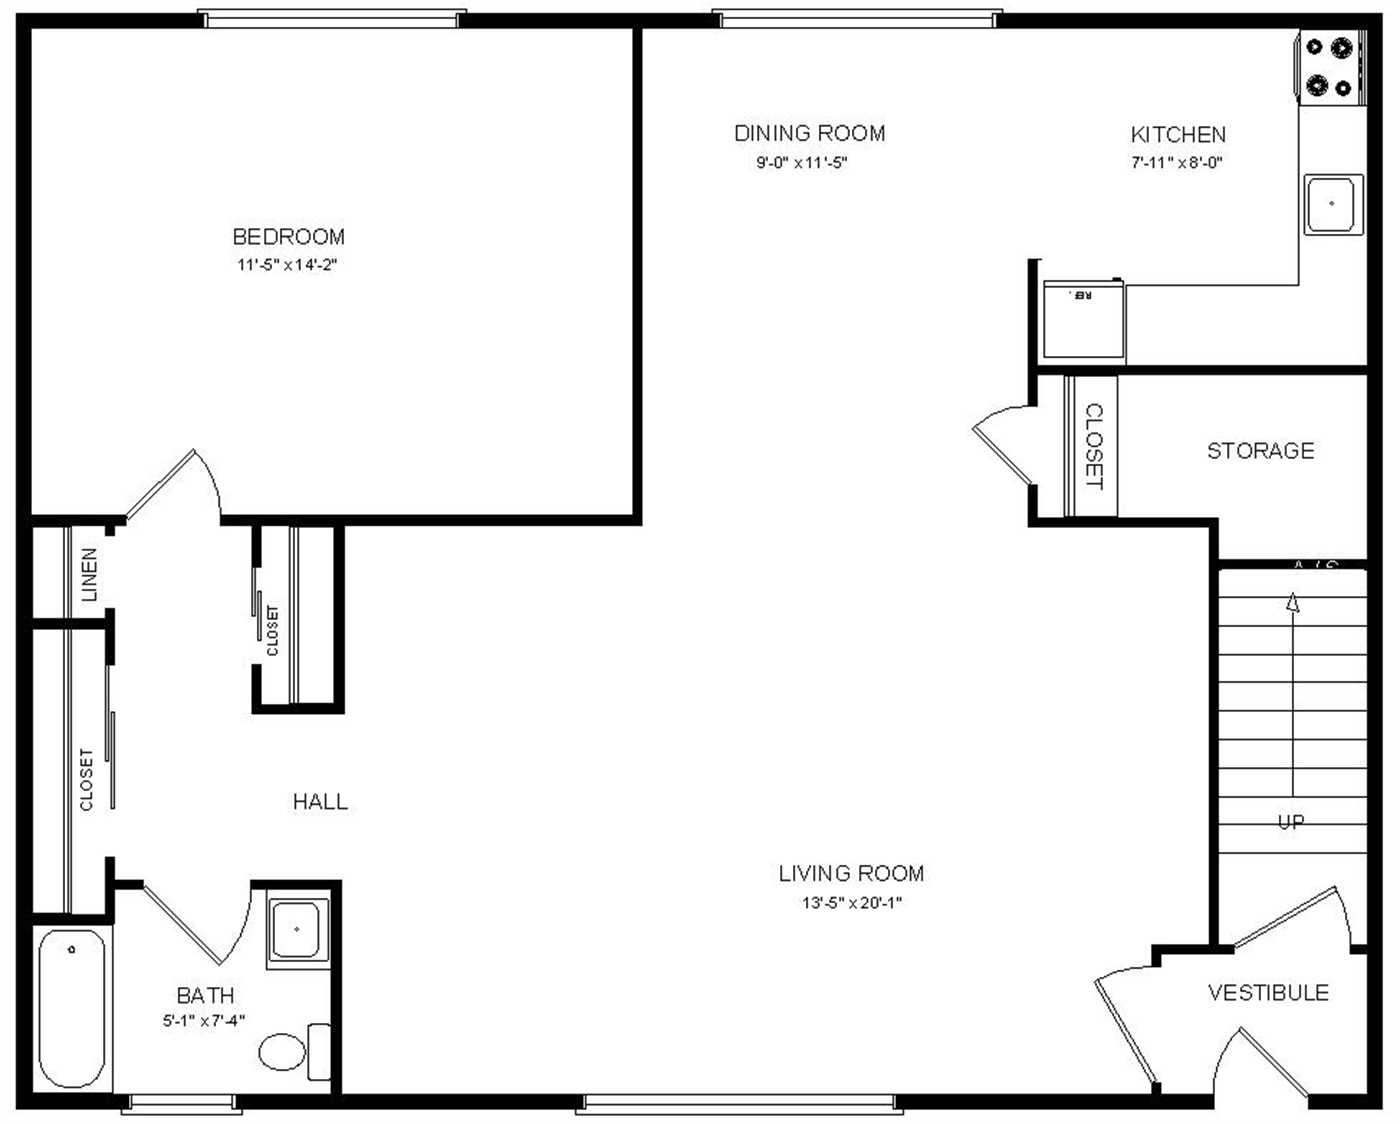 Diy printable floor plan templates plans free for Floor plans online free